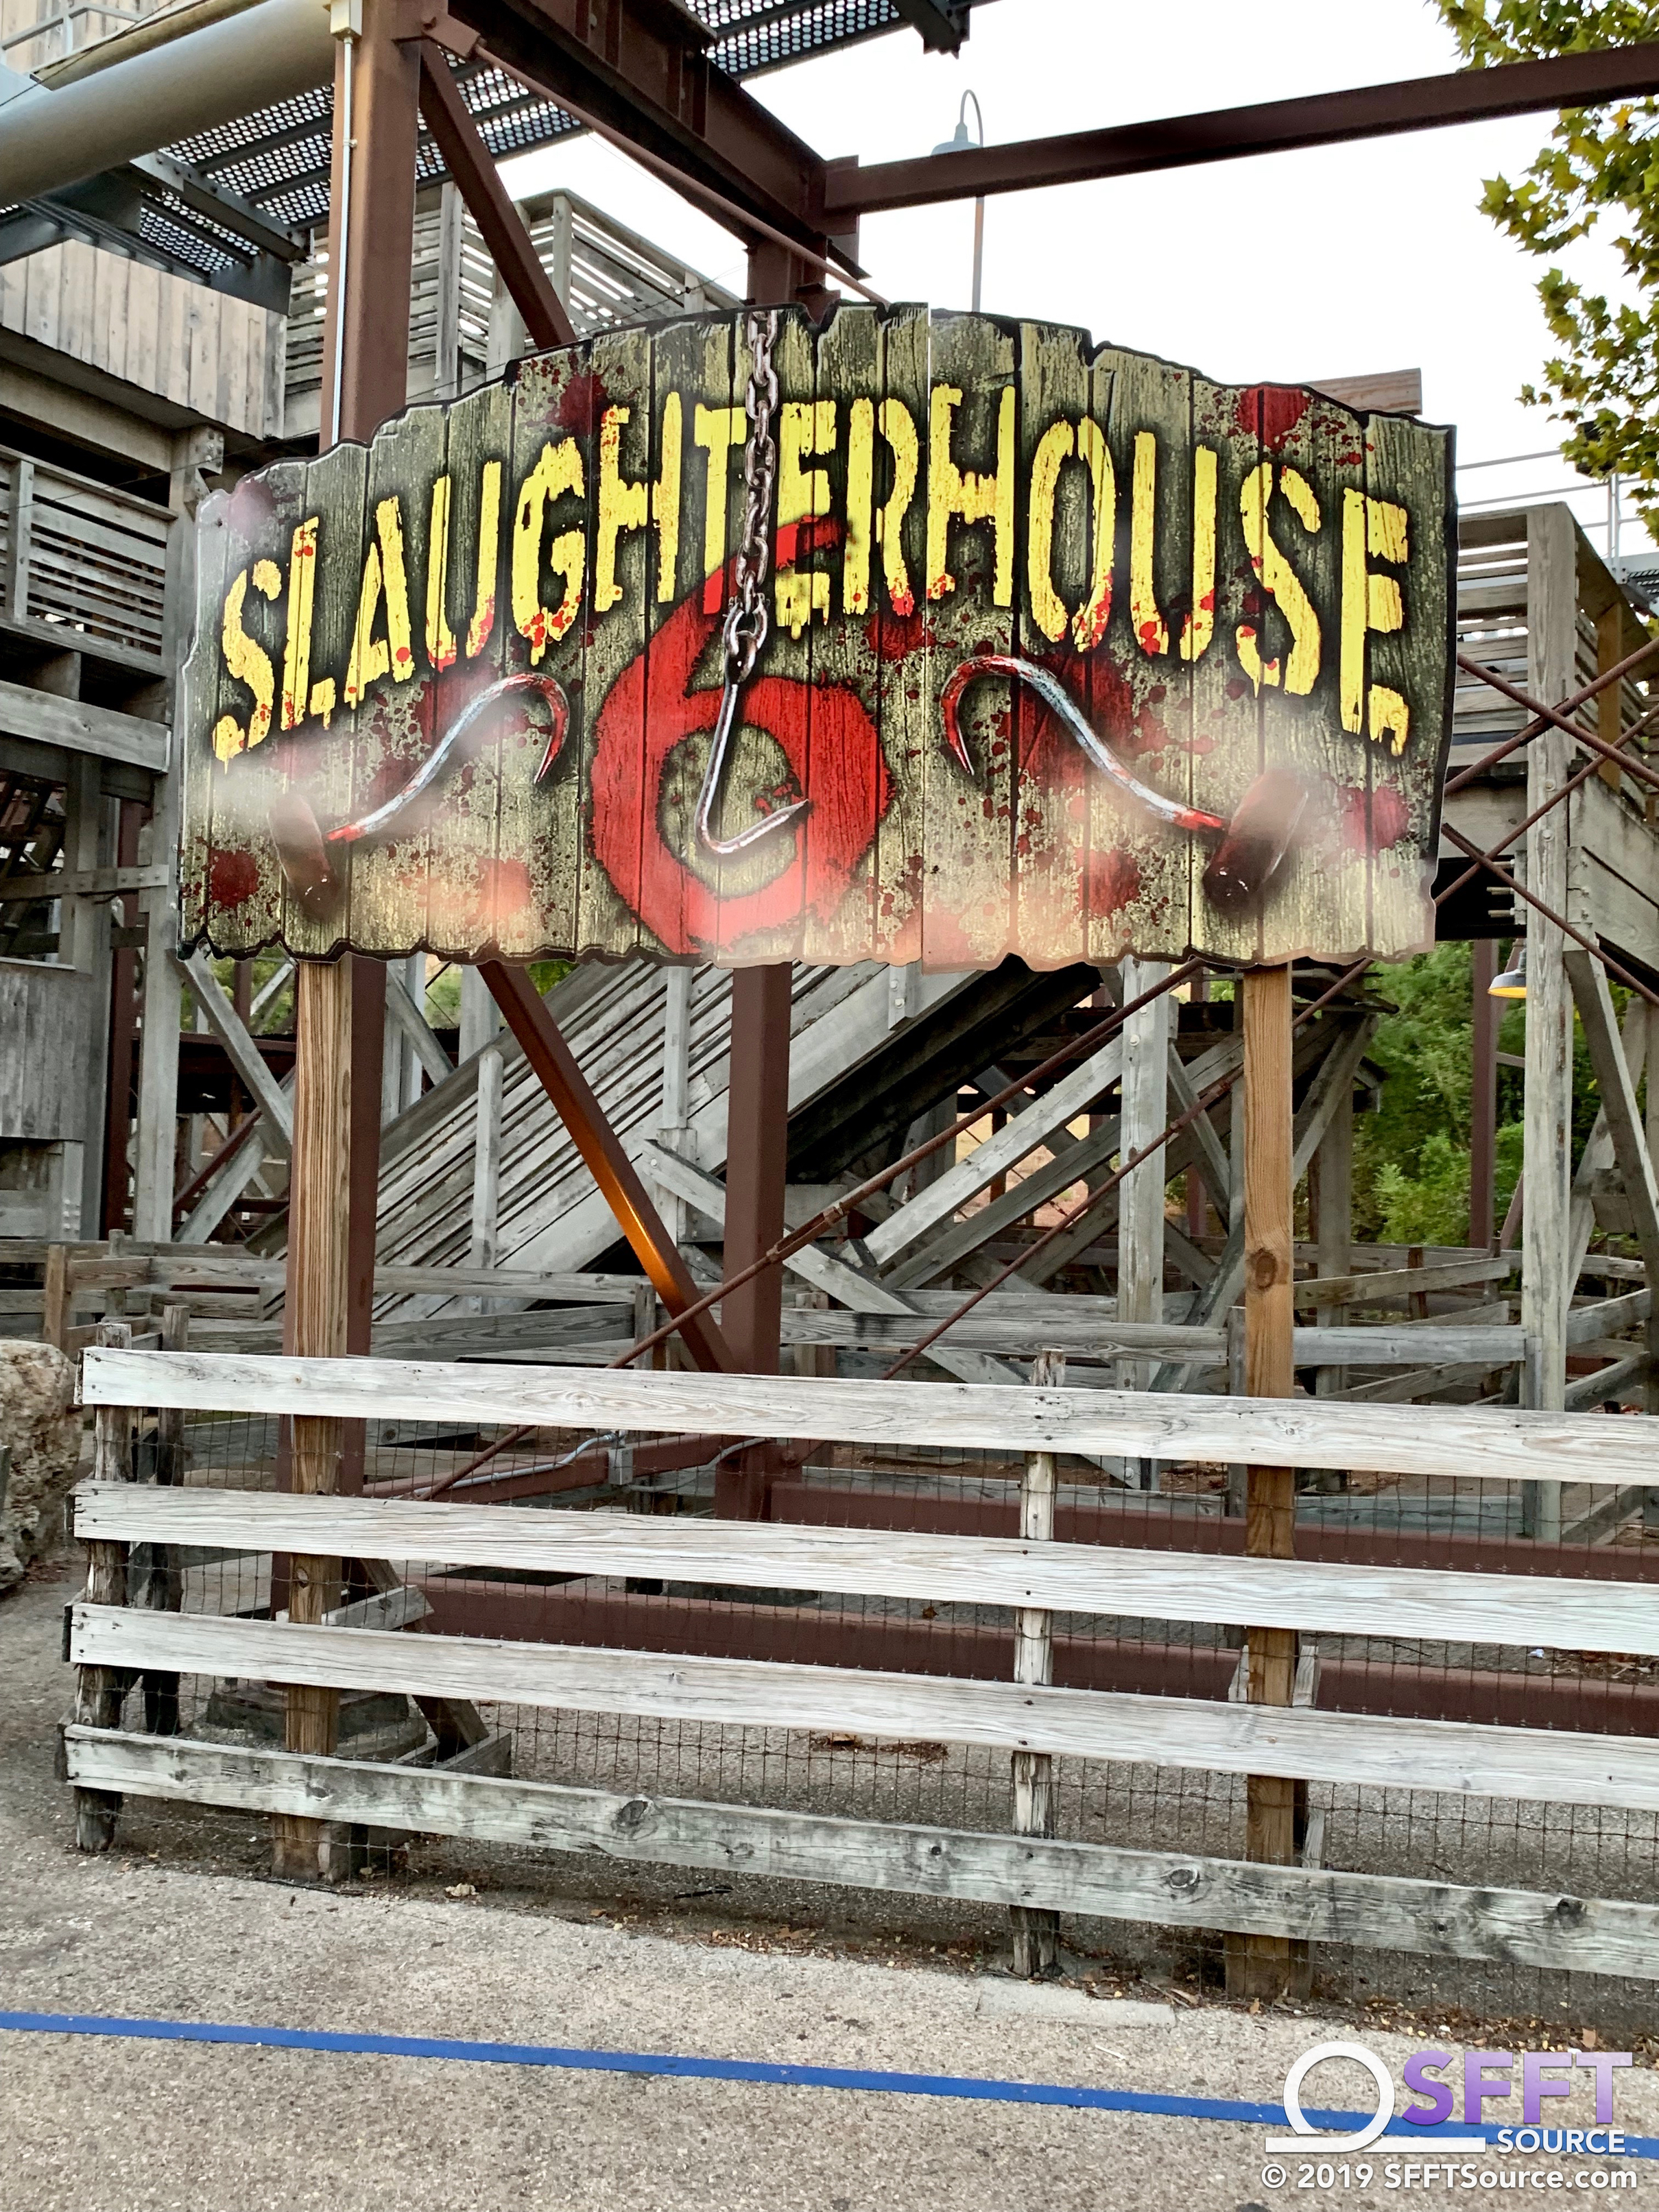 The signage for the Slaughterhouse 6 haunted house has appeared in Crackaxle Canyon.